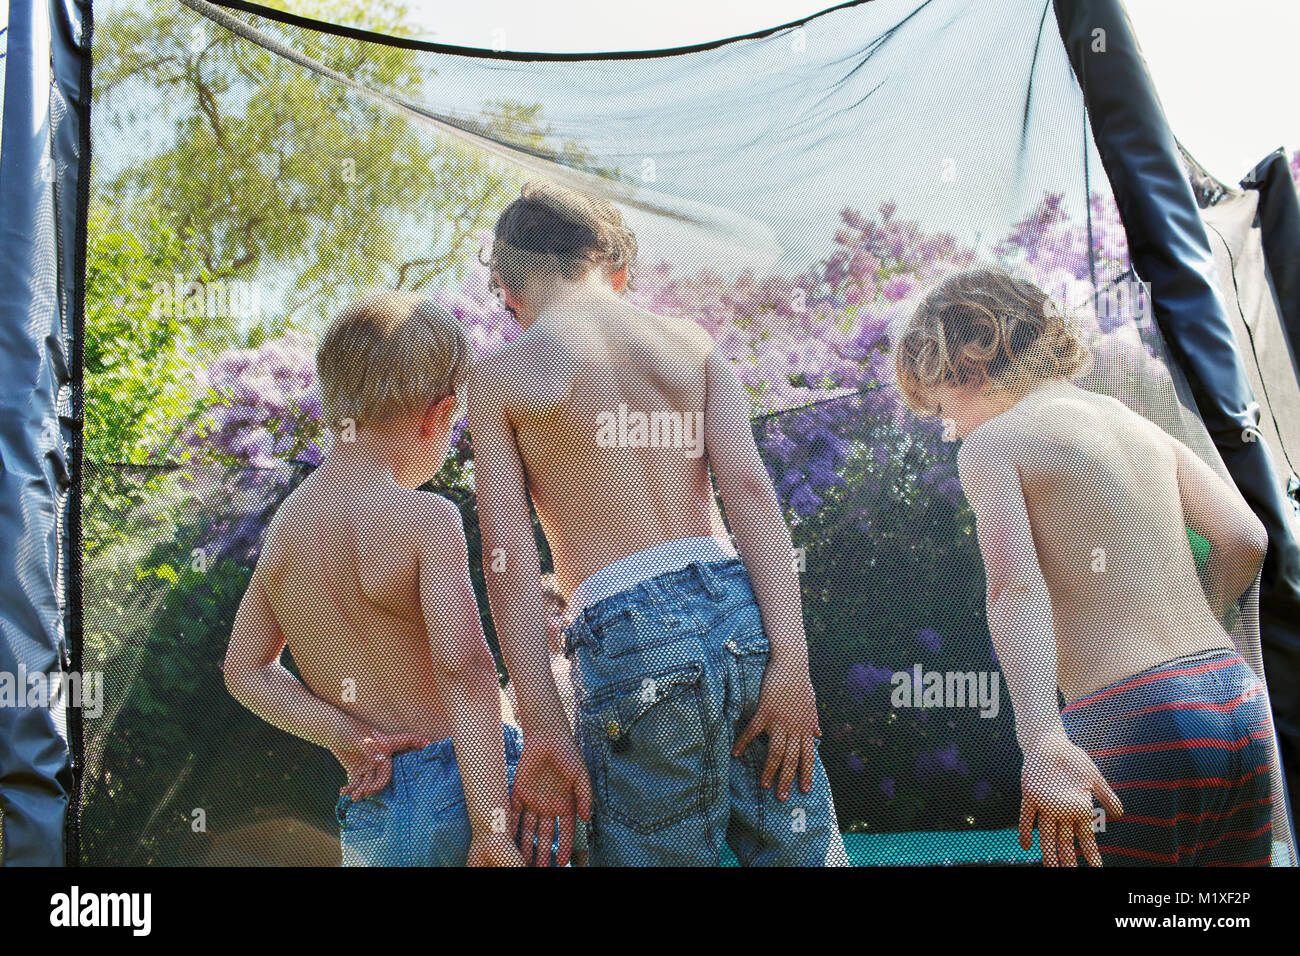 Boys on trampoline - Stock Image